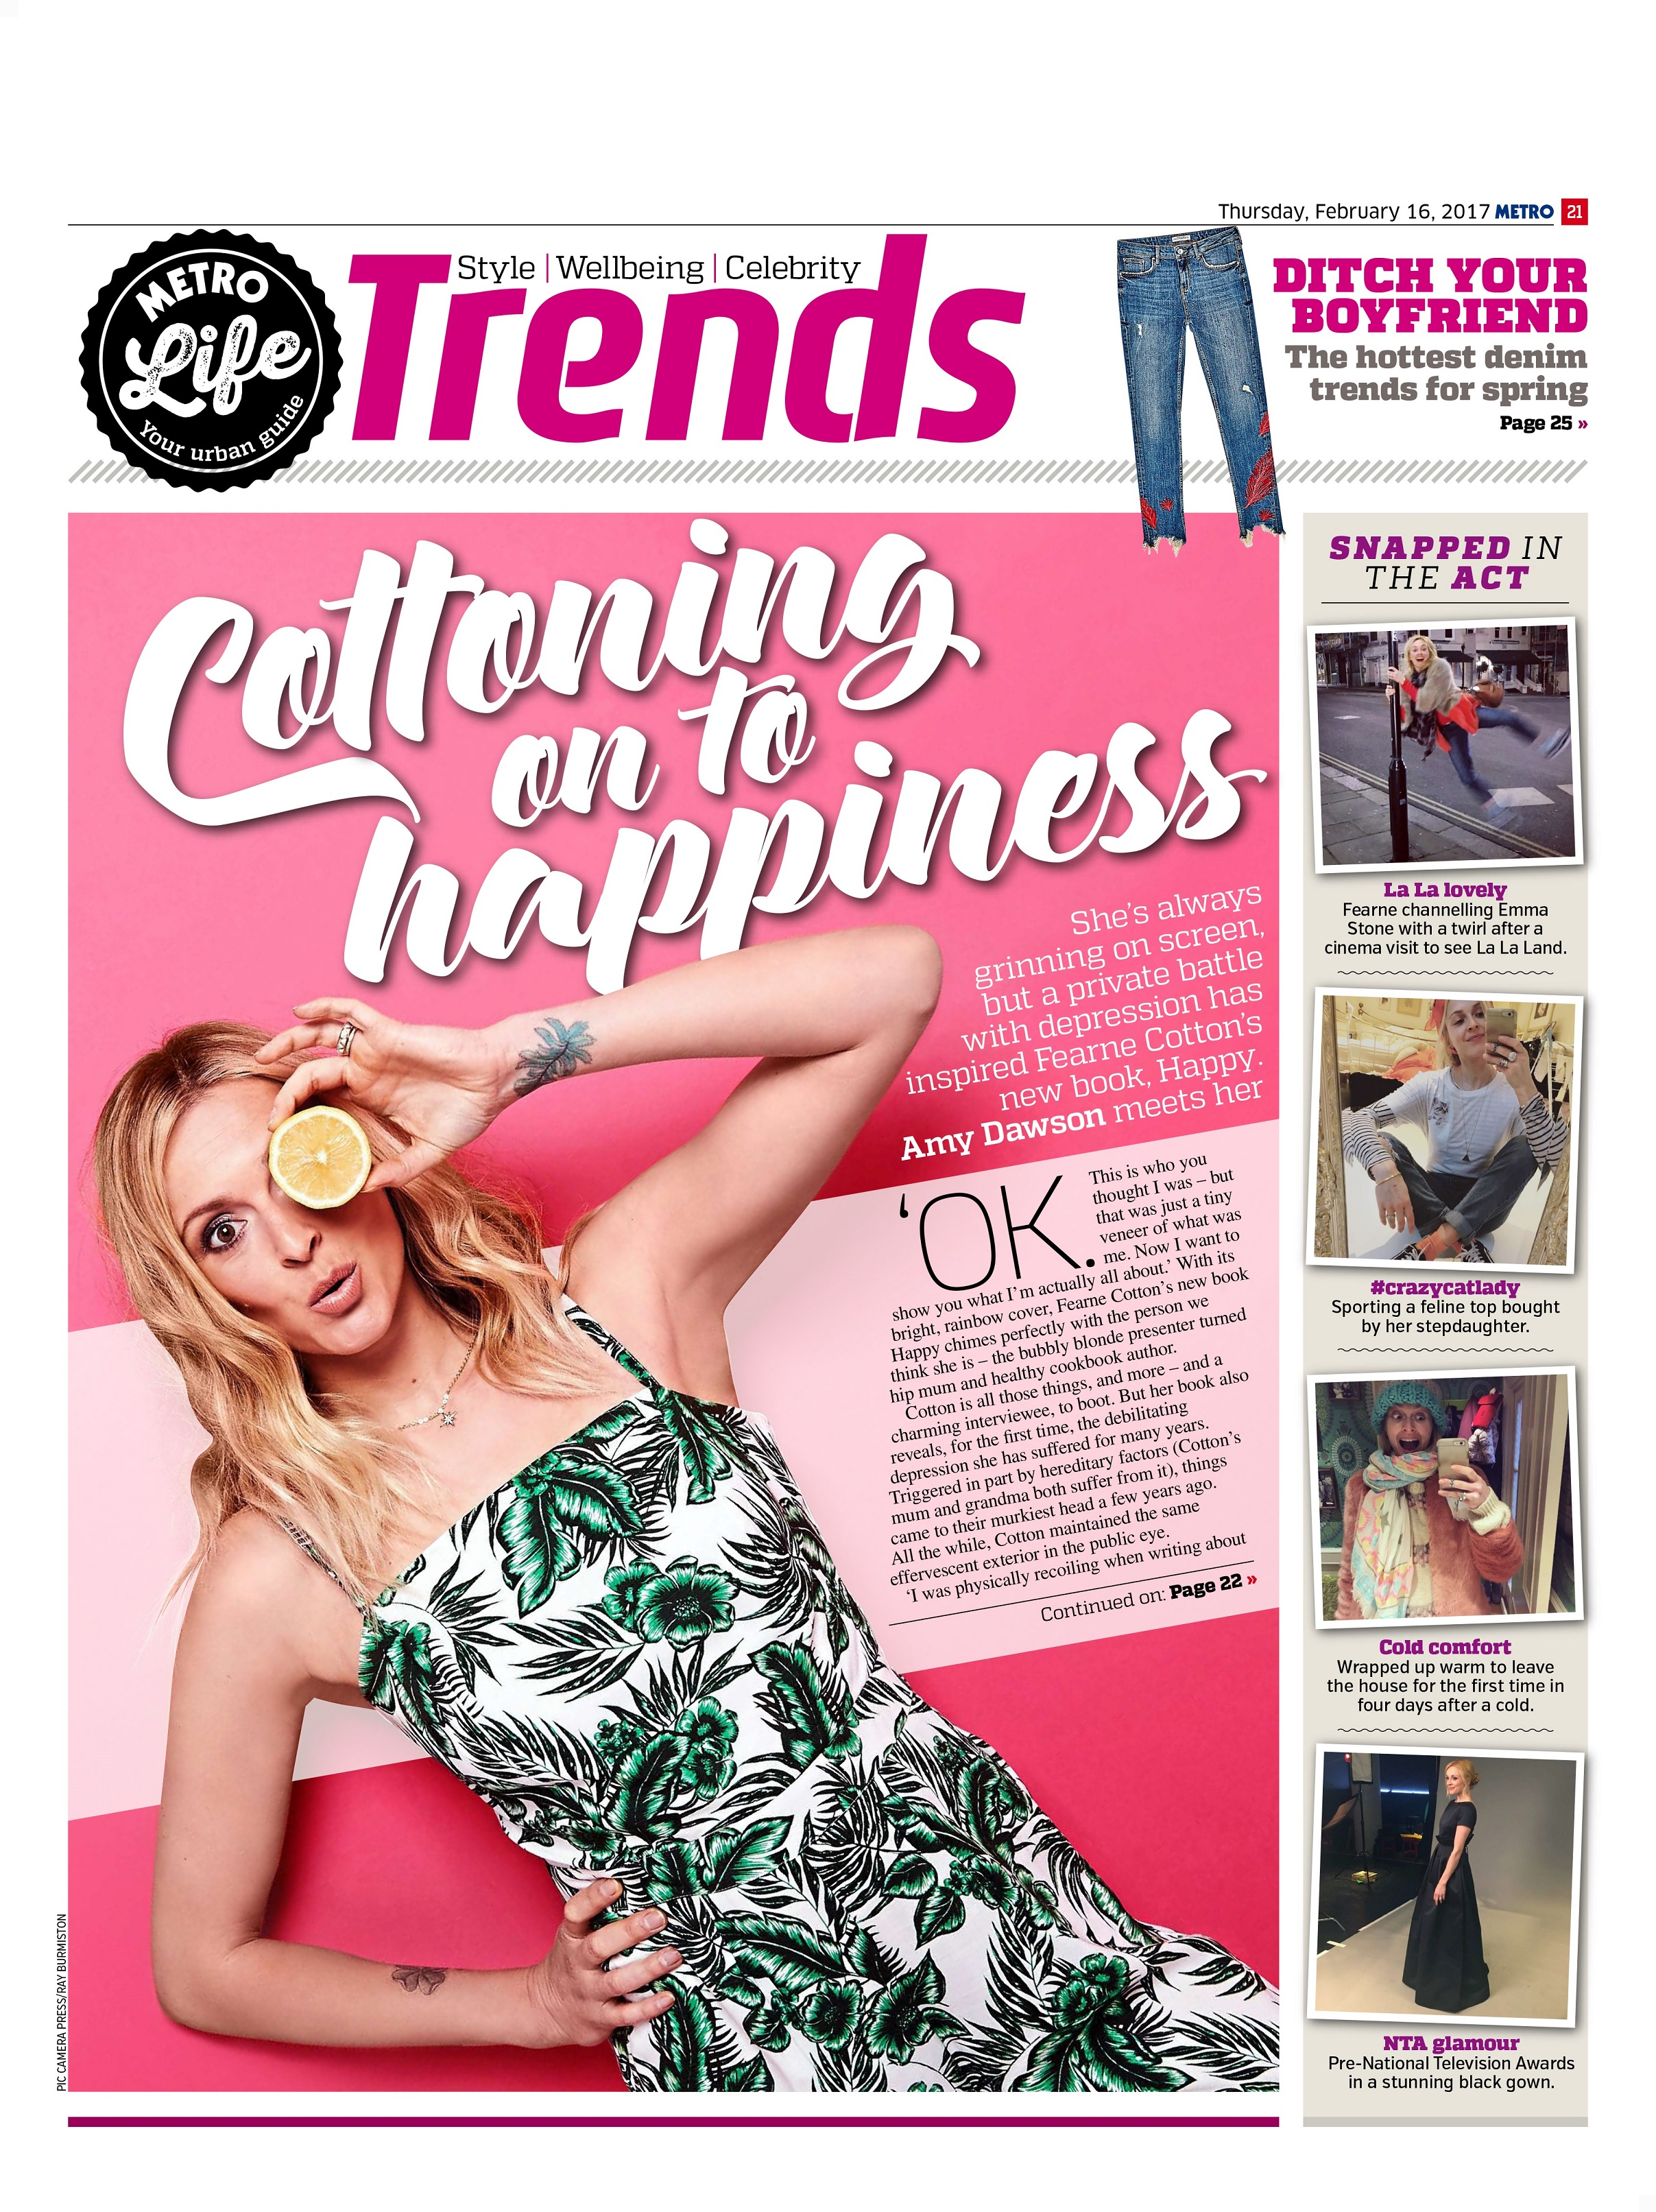 Cottoning On To Happiness: An Interview with Fearne Cotton (Metro, 16th Feb 2017)